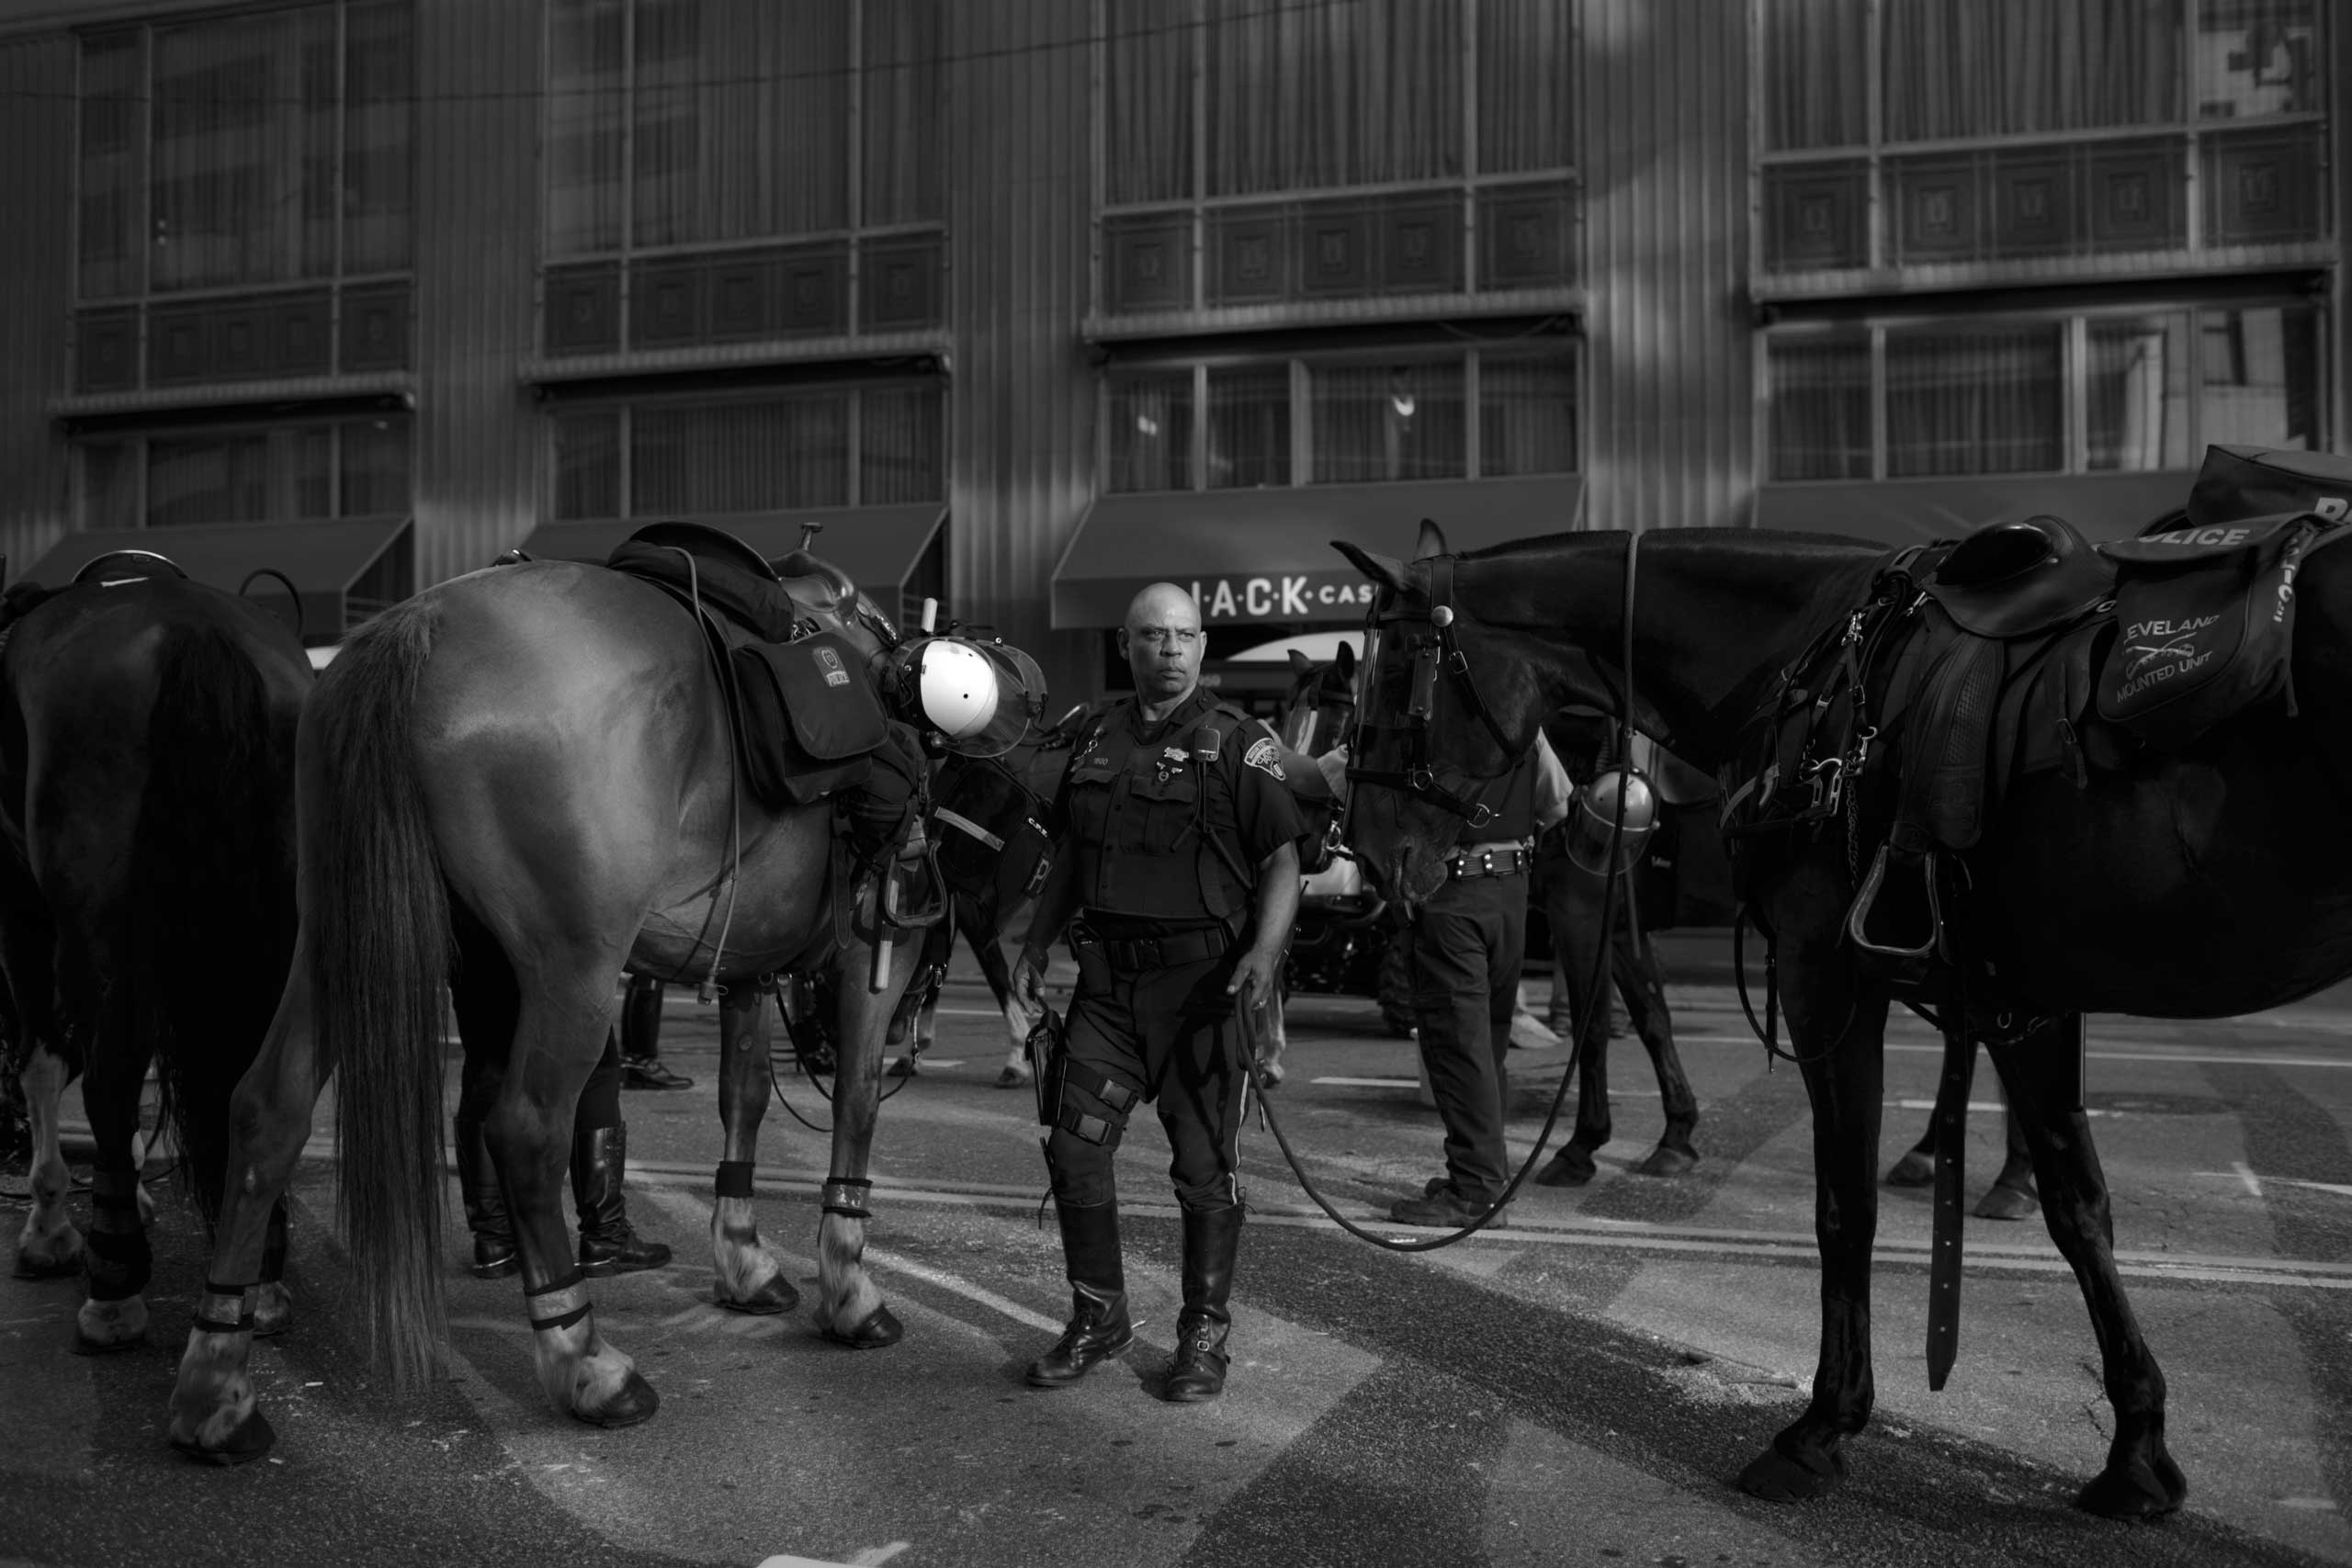 July 19, 2016 - Cleveland, Ohio: An officer of the Cleveland Police Mounted Unit is taking a break after shift change on the second day of the Republican National Convention.